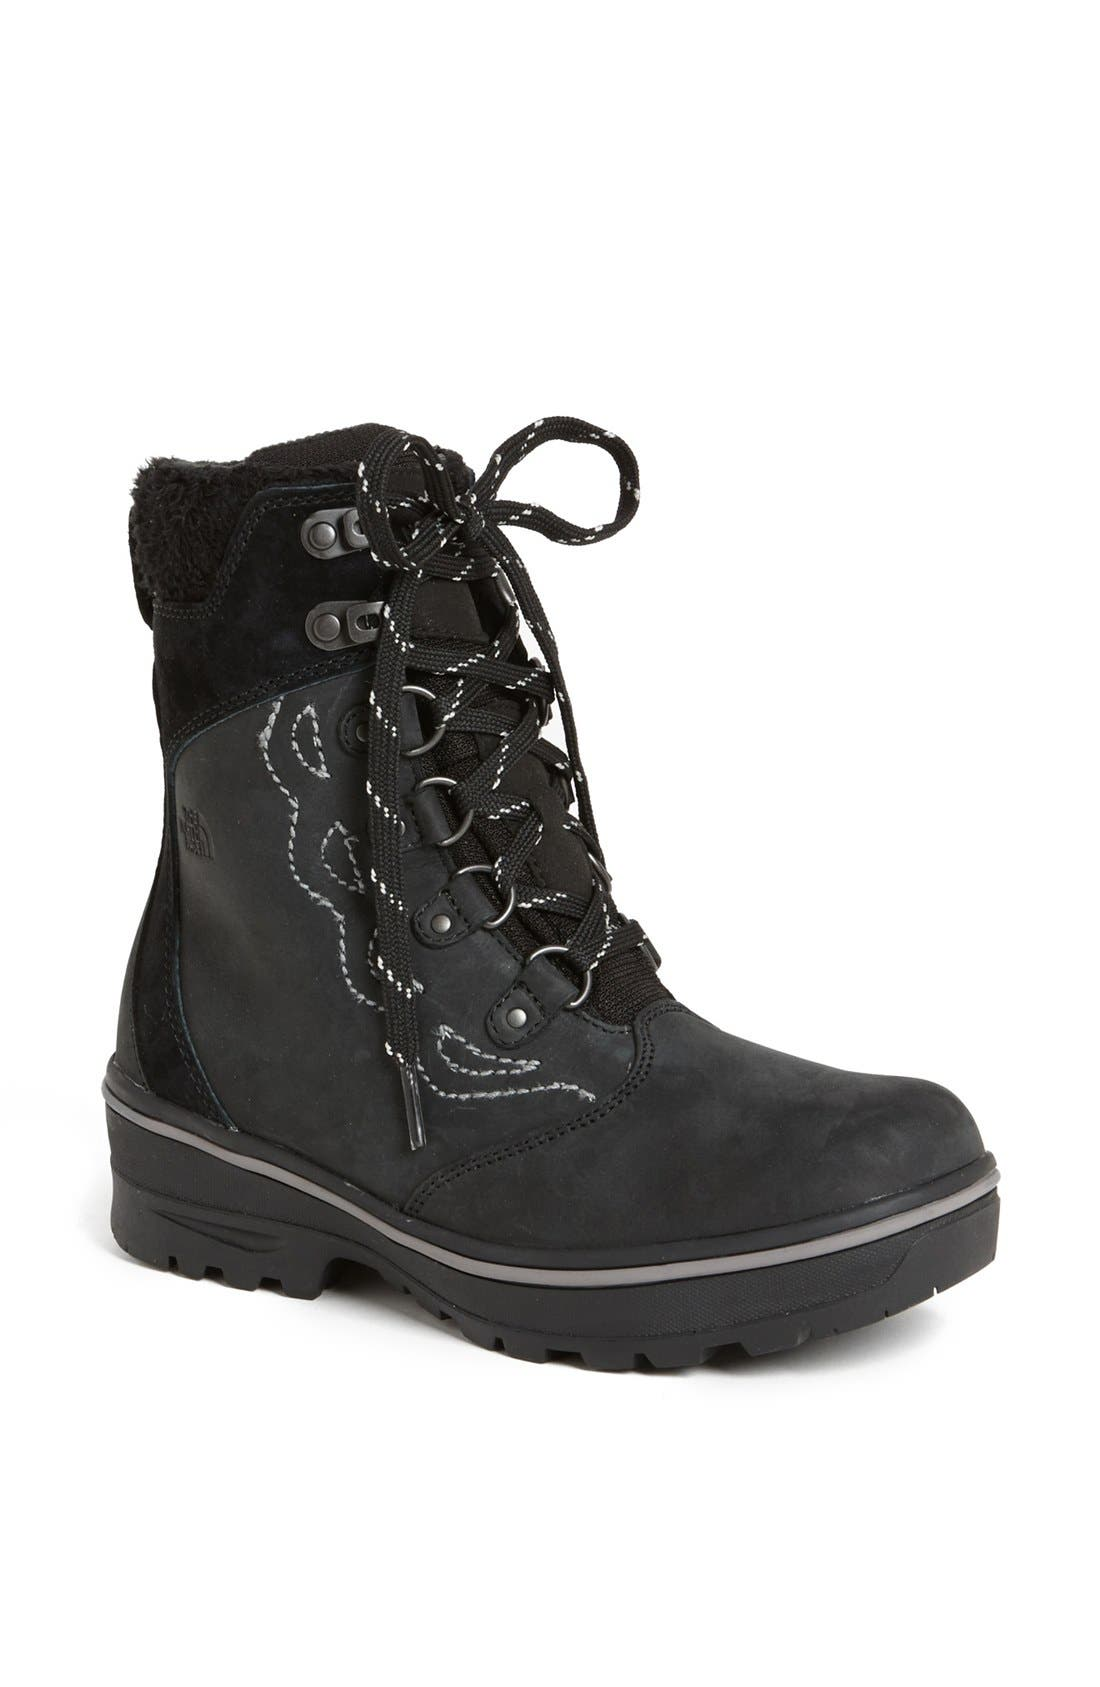 Alternate Image 1 Selected - The North Face 'Snowbreaker' Waterproof Leather Boot (Women)